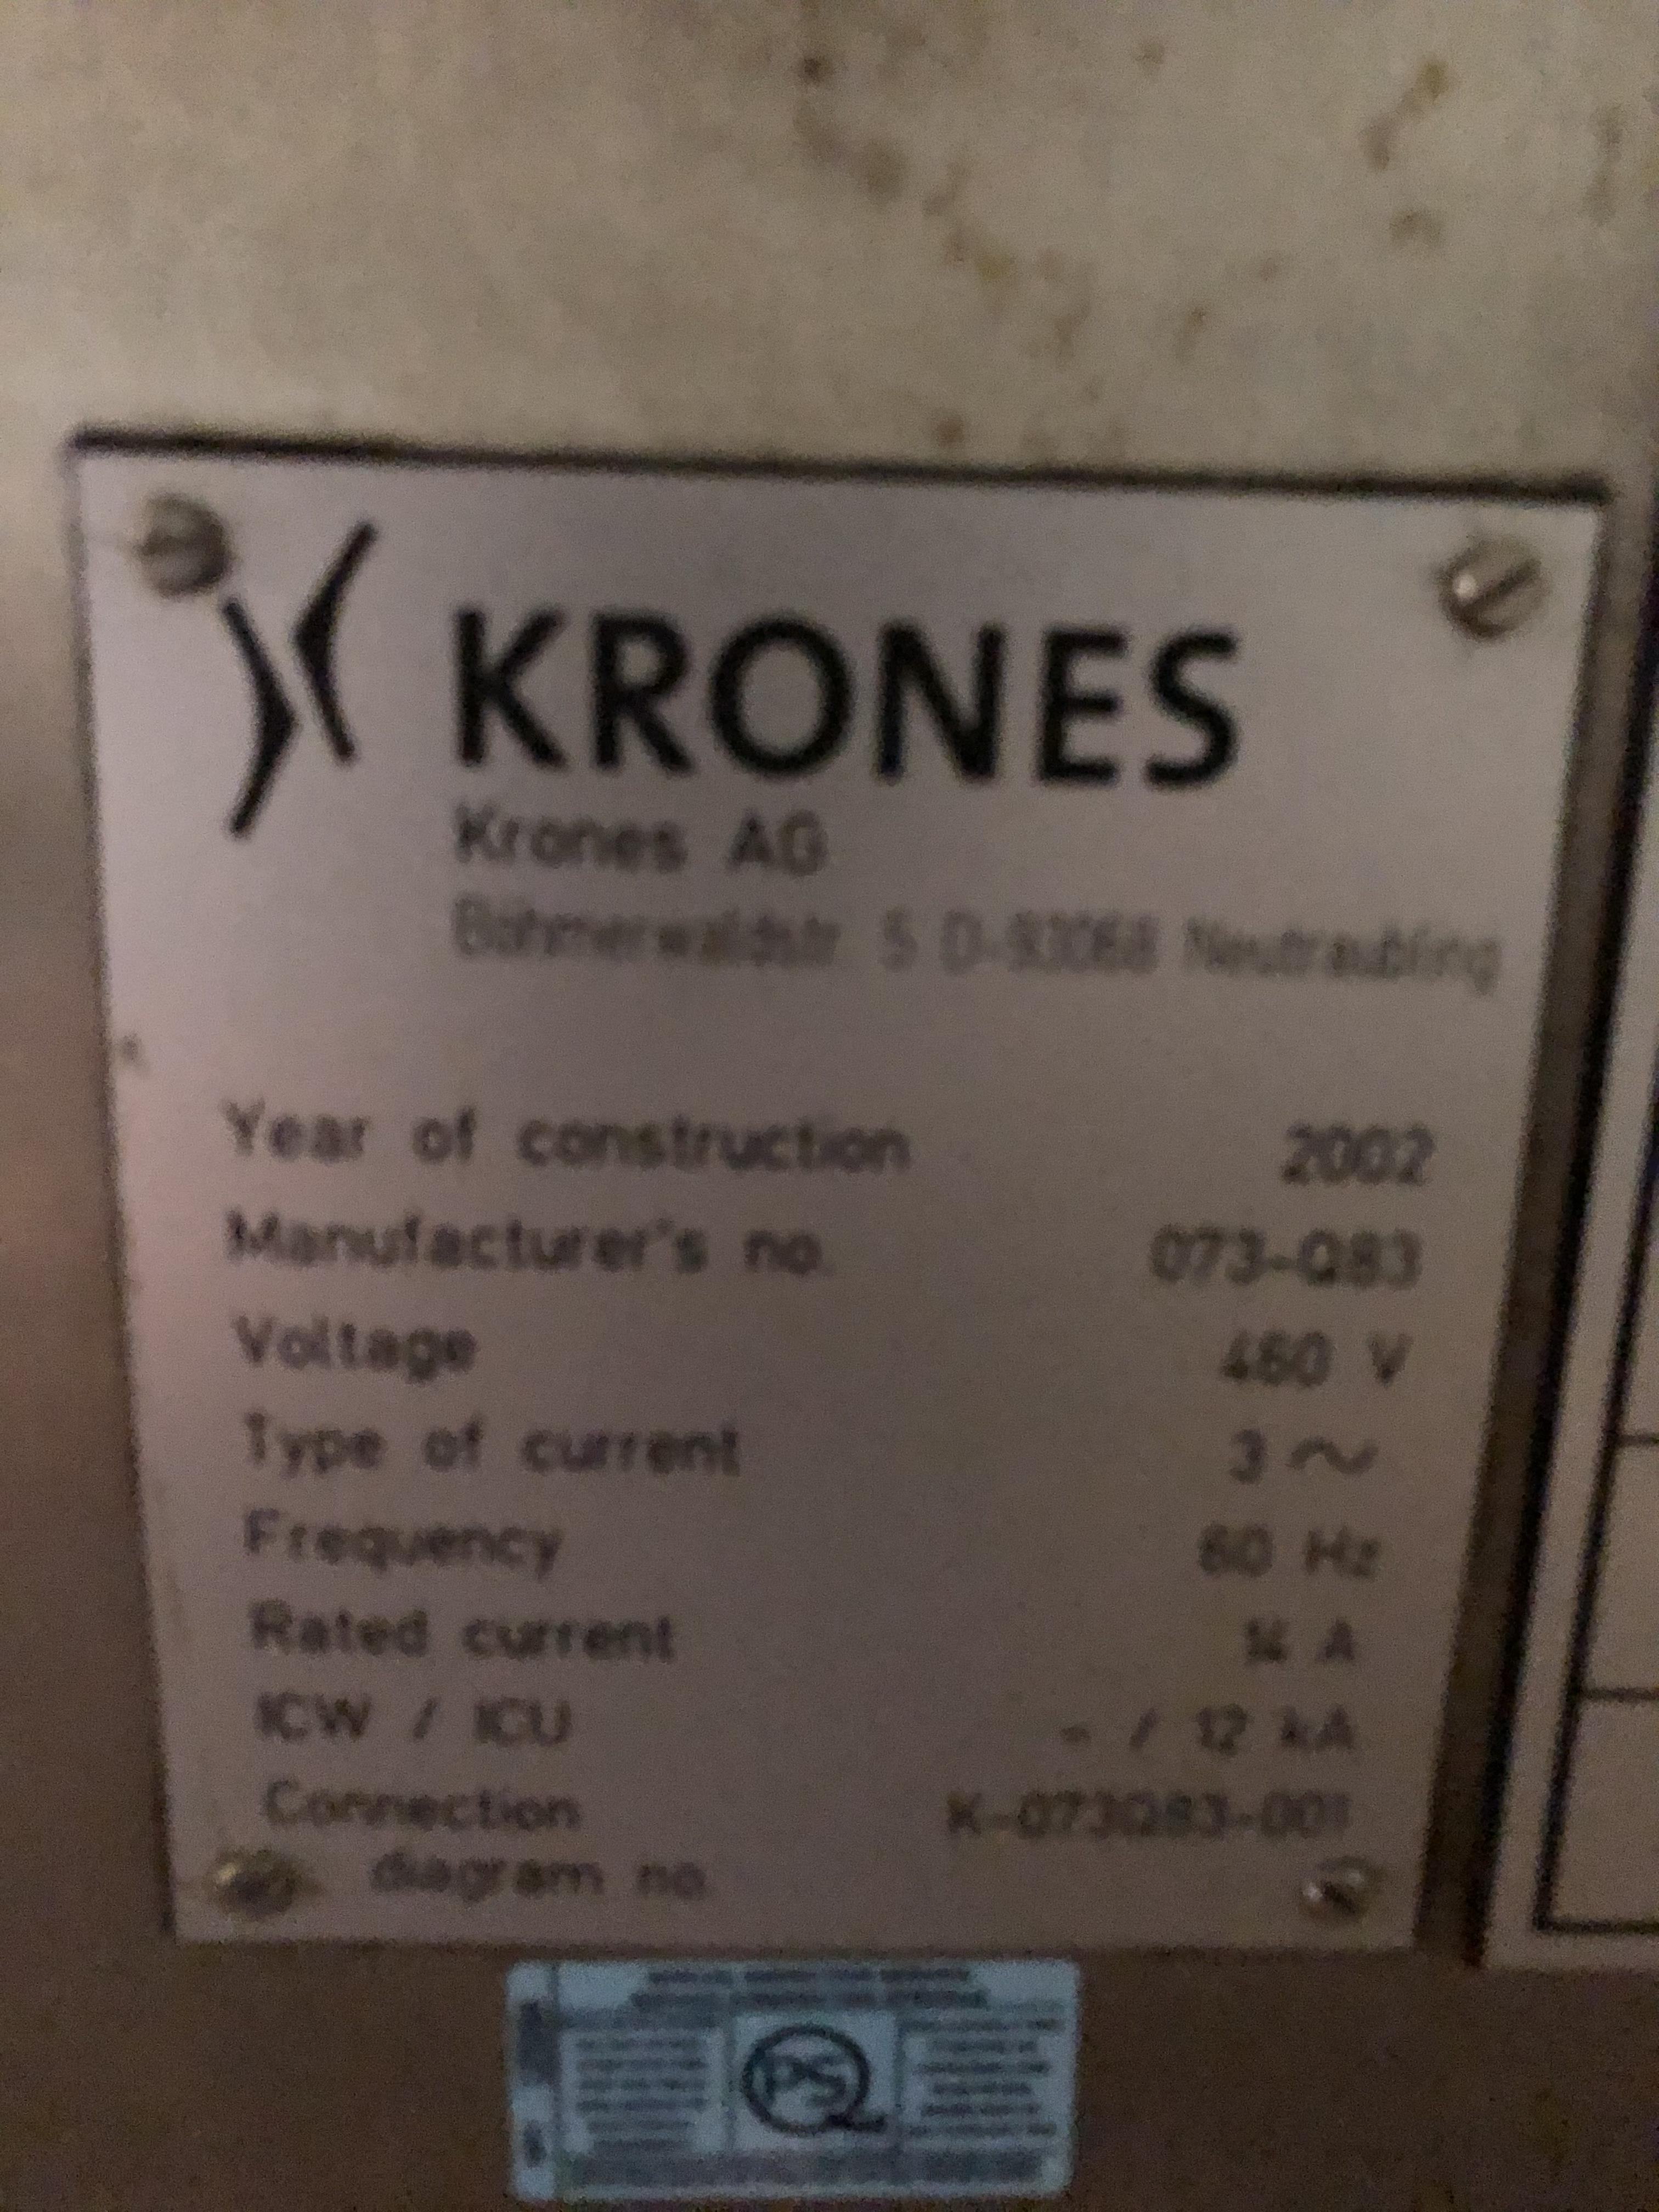 Krones Canmatic Labeler, Machine #073-Q83, RIGGING FEE - $1750 - Image 2 of 5